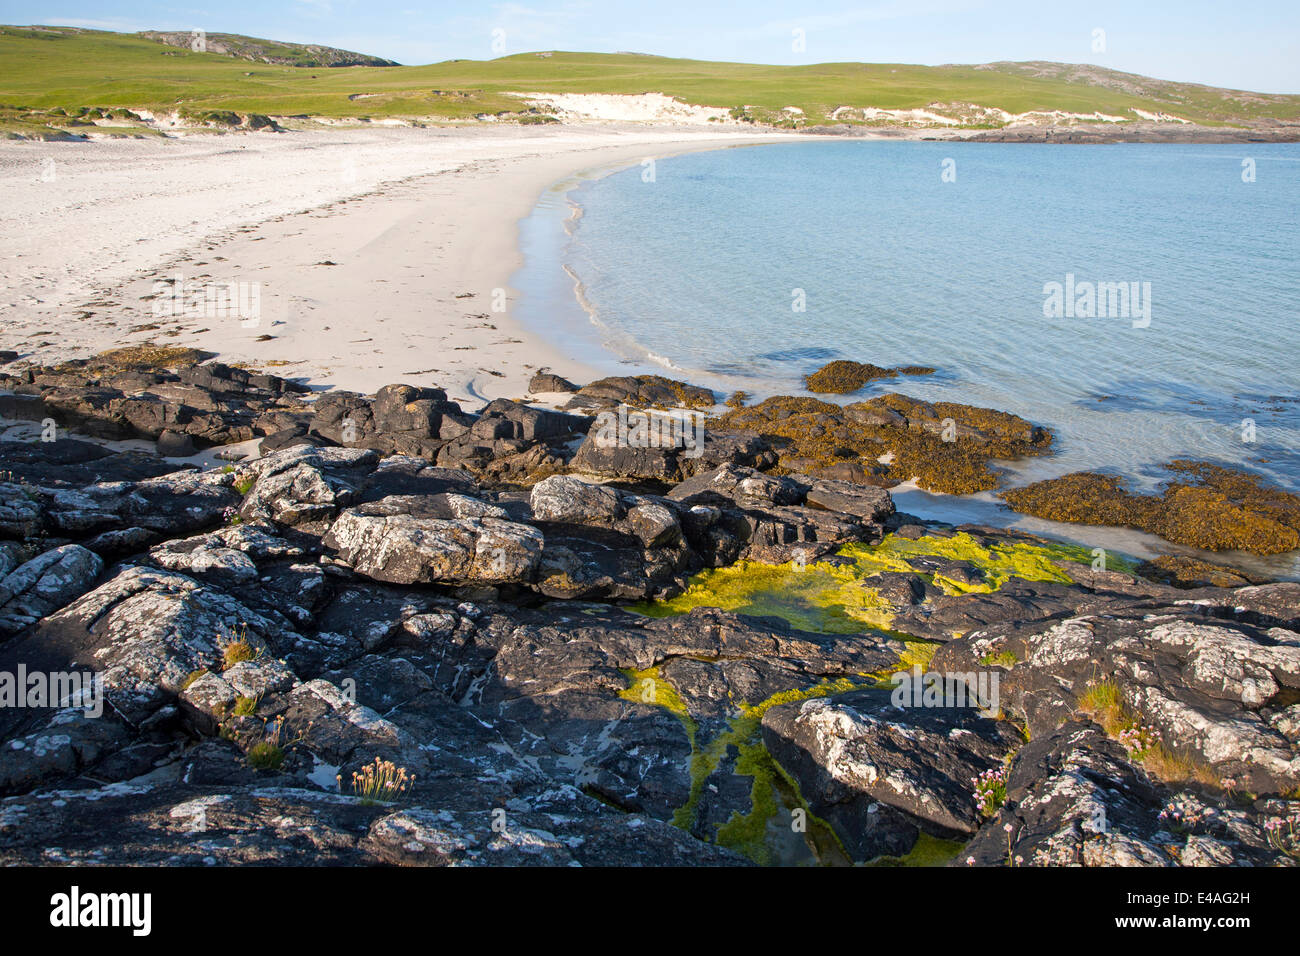 Sandy beach on Vatersay, Isle of Barra, Outer Hebrides, Scotland - Stock Image